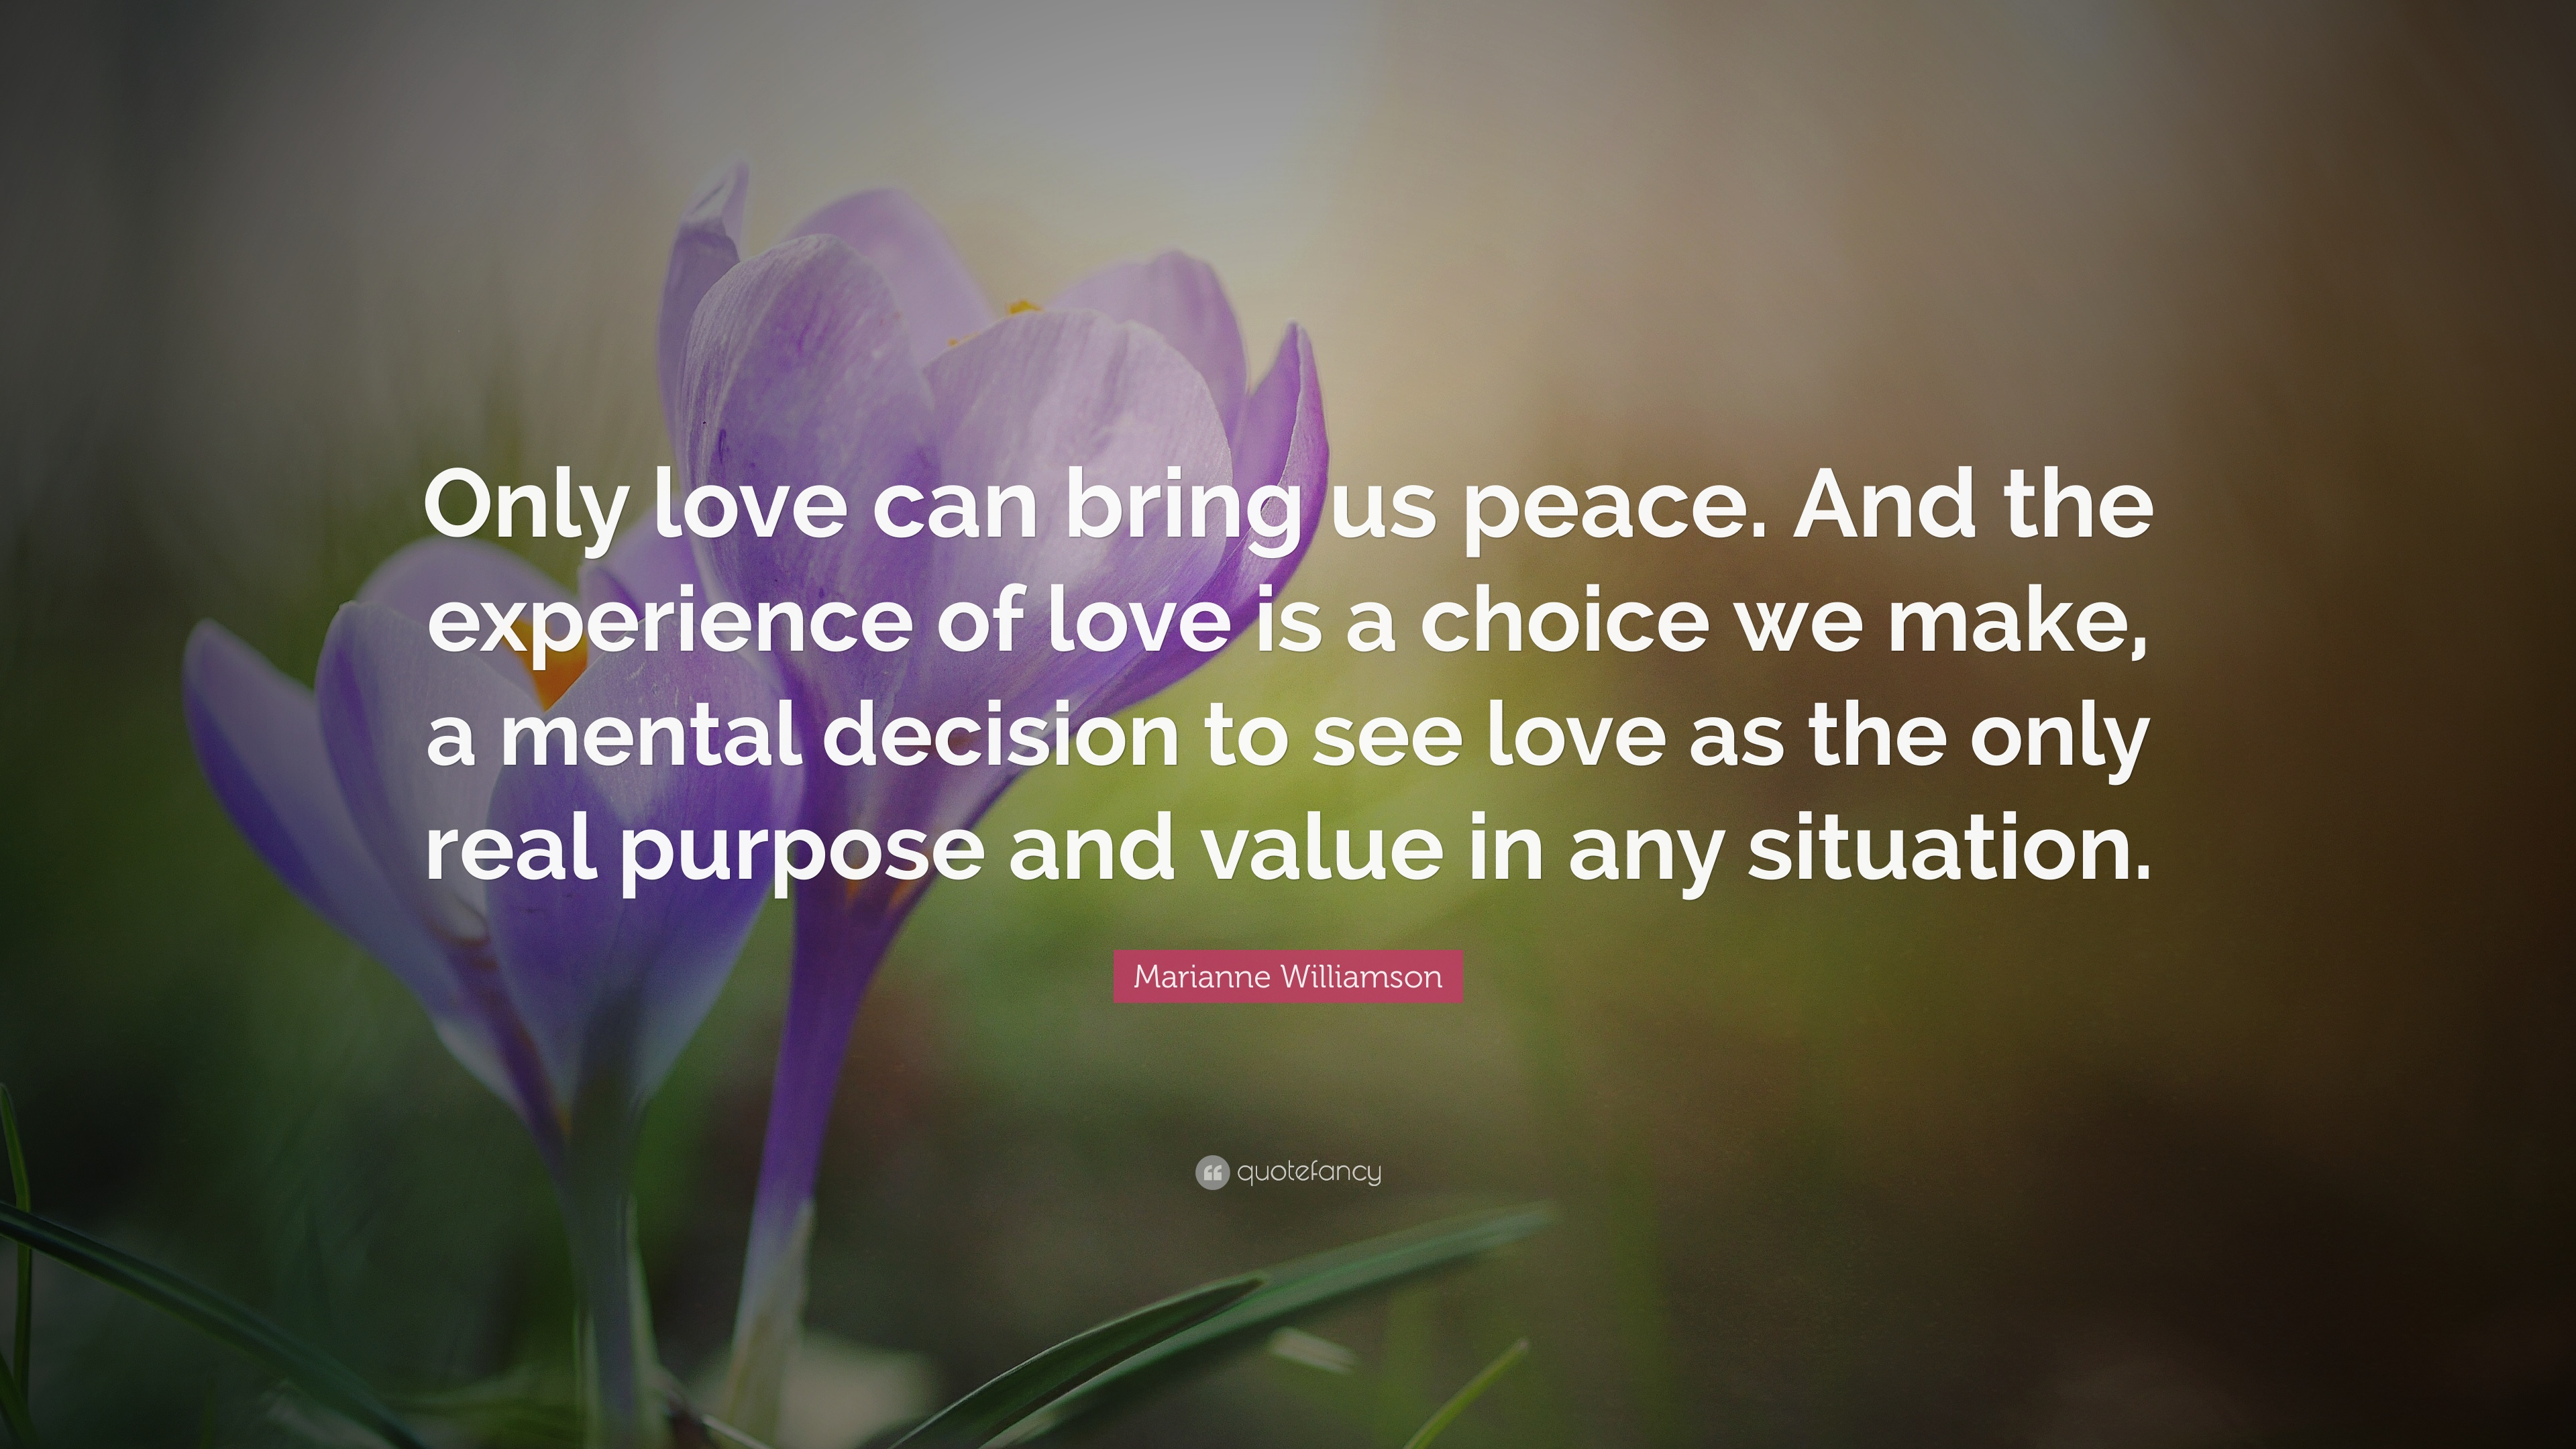 Beau Marianne Williamson Quote: U201cOnly Love Can Bring Us Peace. And The  Experience Of